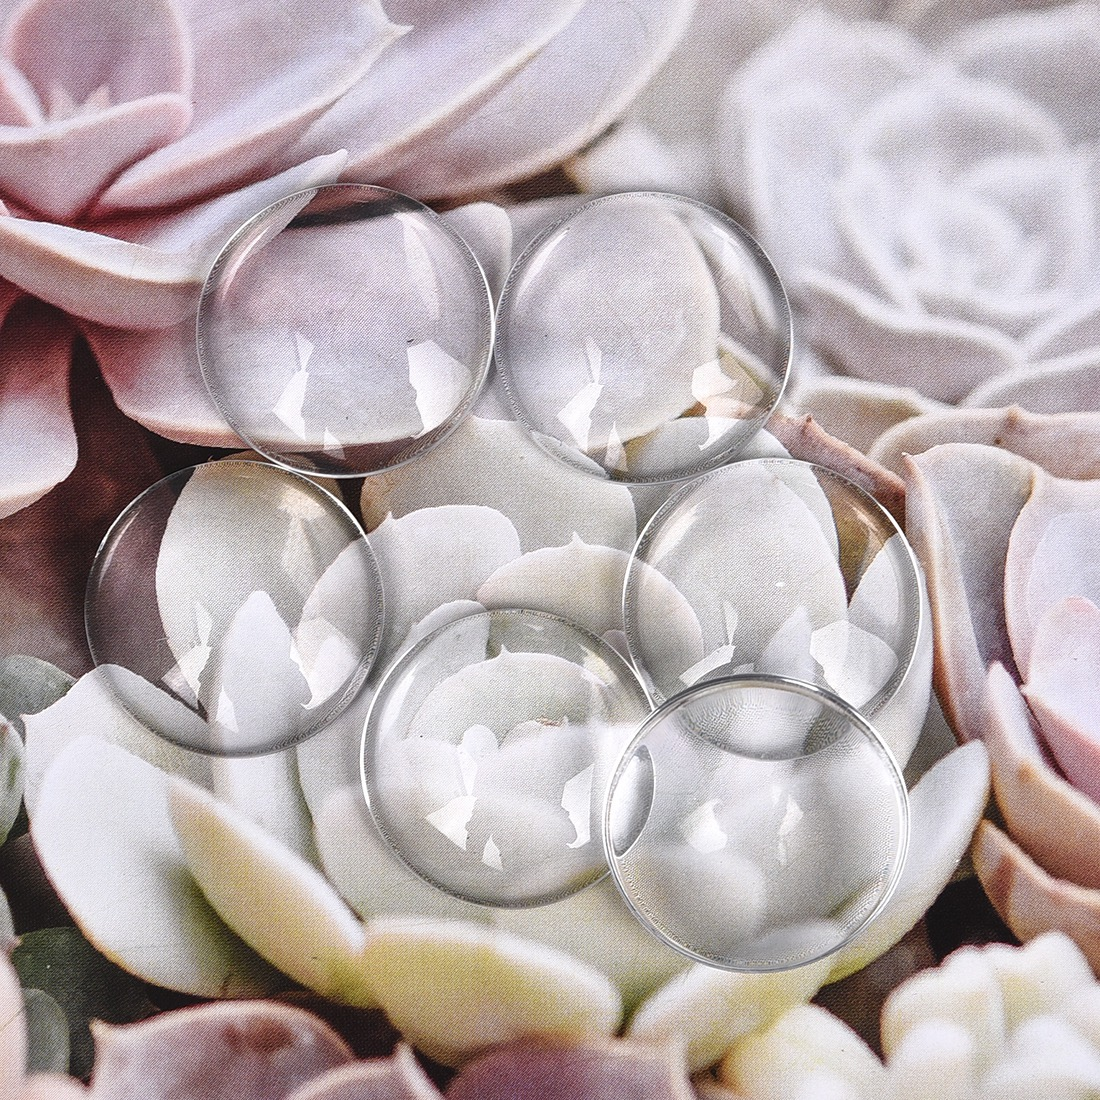 LIEBE ENGEL 10PCS 10mm 12mm 14mm 16mm 18mm 20mm 25mm Cabochon Clear Glass Transparent Cover DIY Jewelry Components & Findings